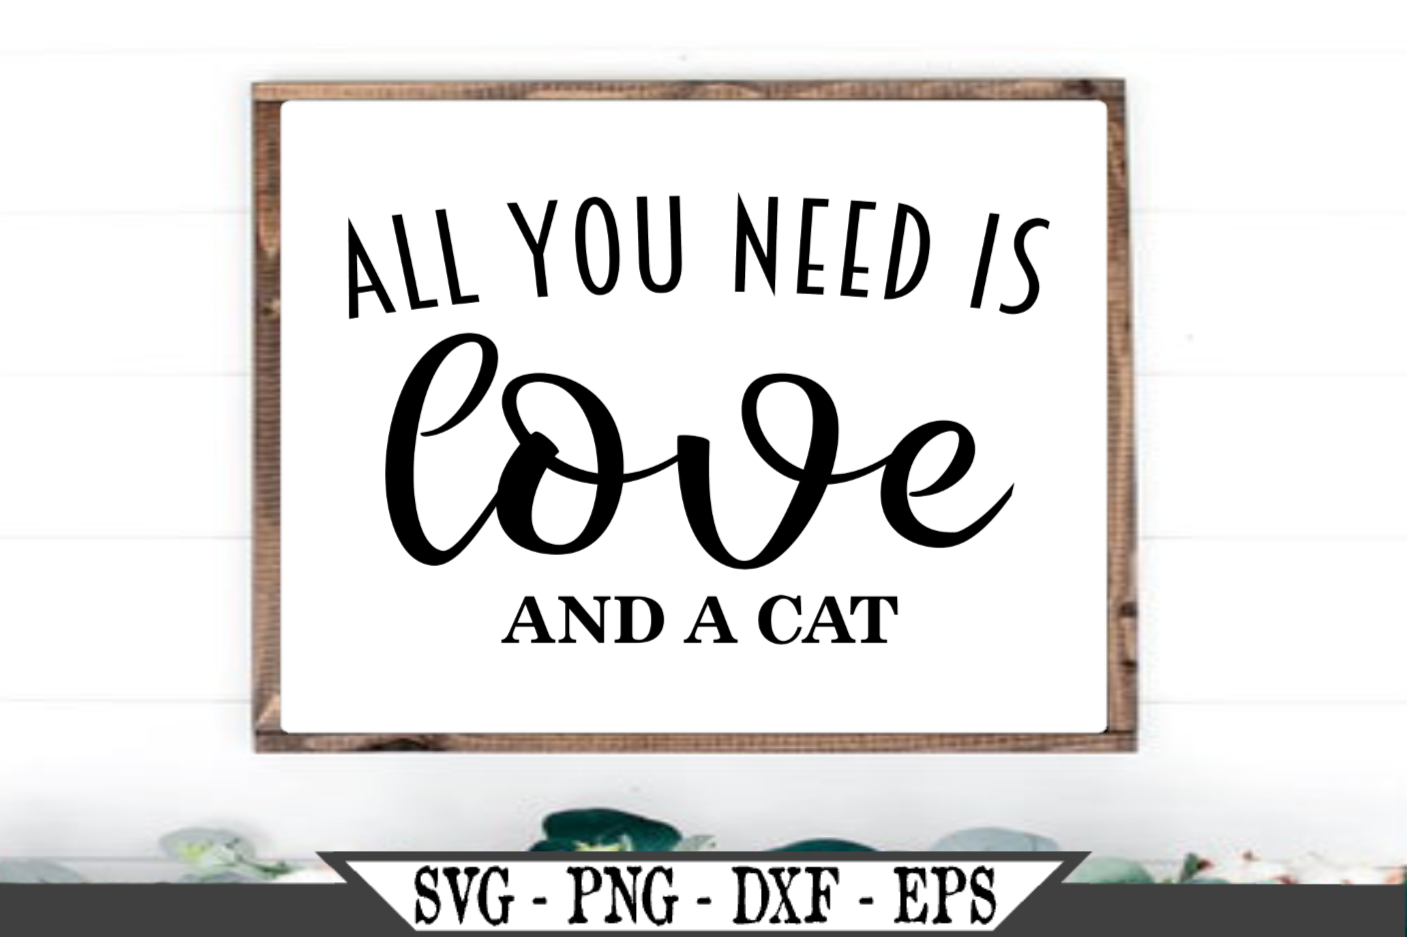 All You Need Is Love And A Cat SVG example image 1